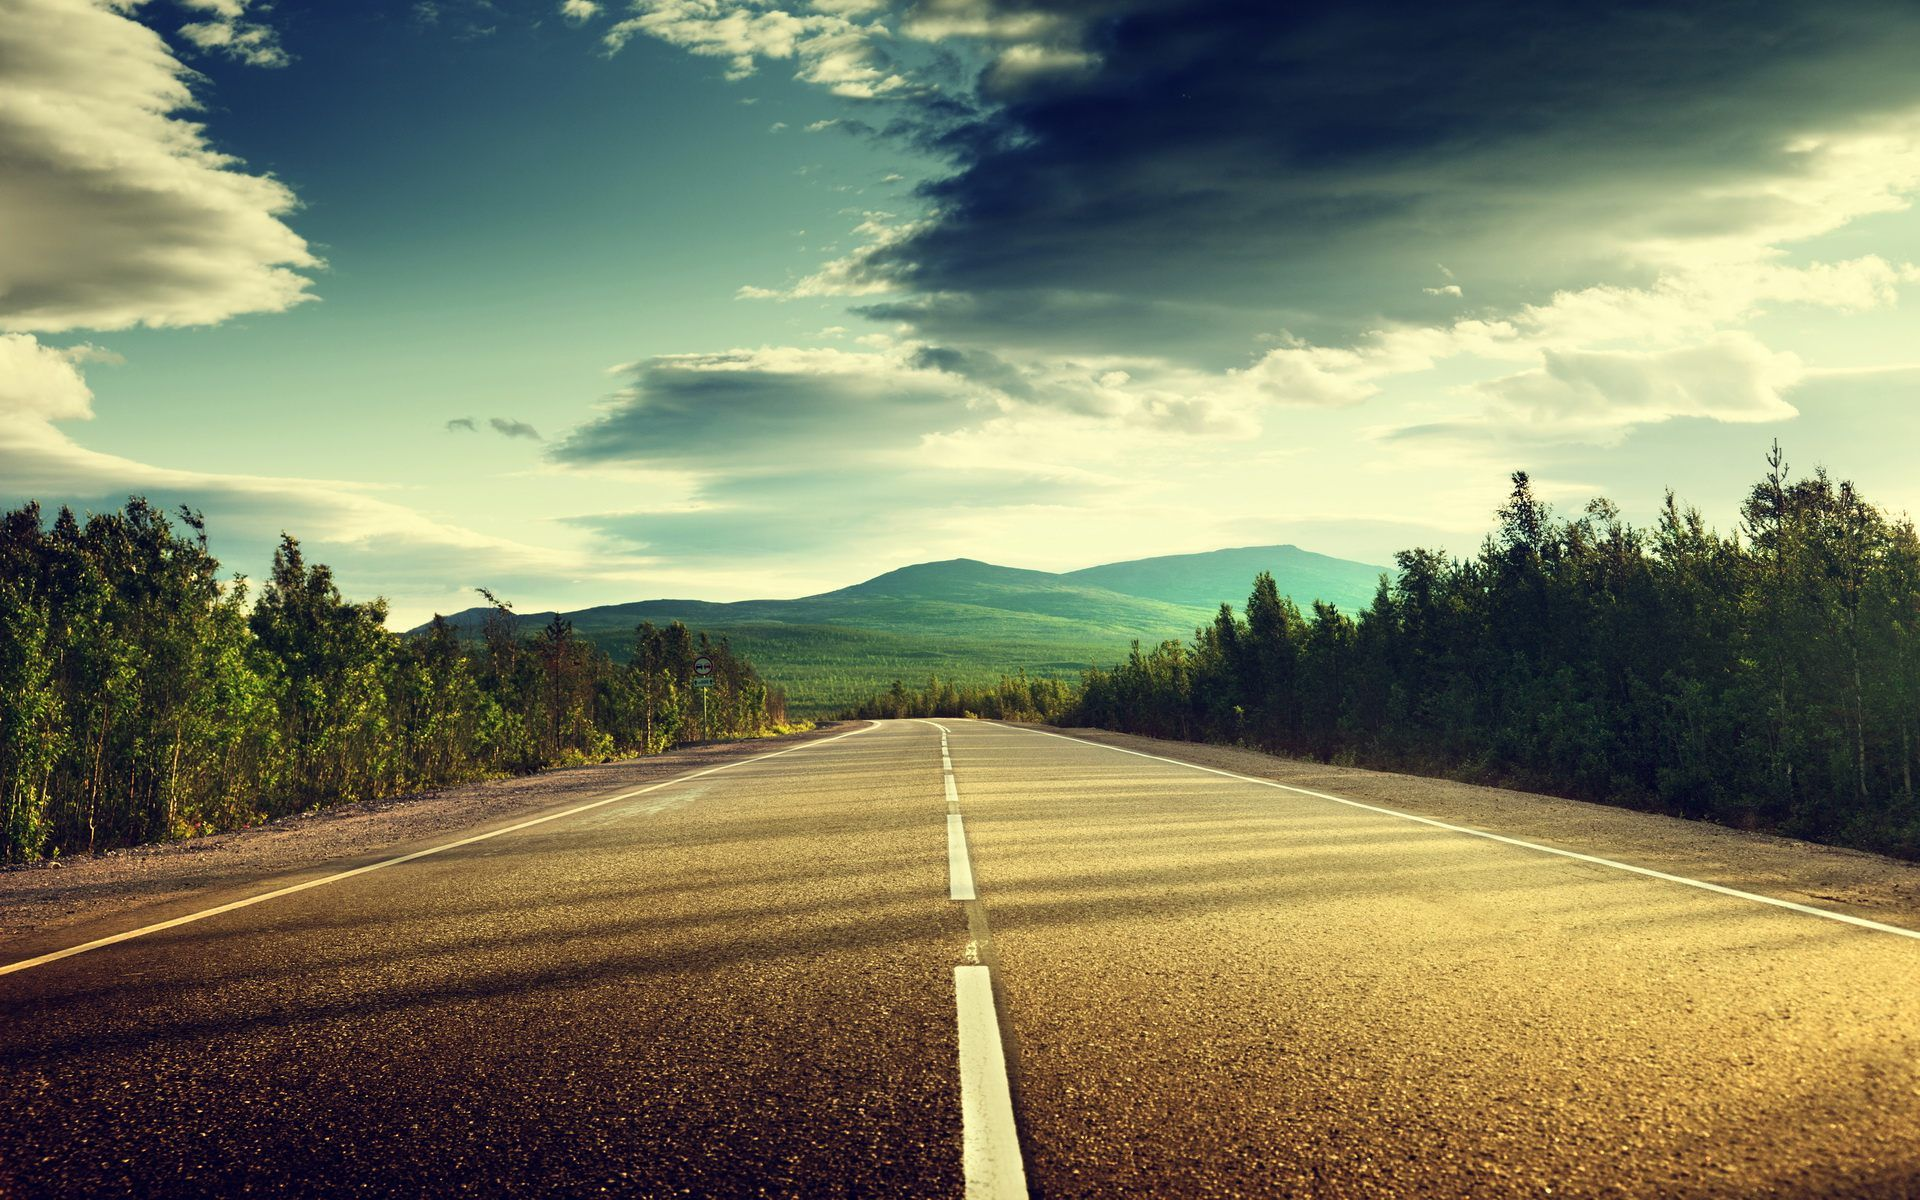 Road Wallpaper High Quality Resolution Landscape Wallpapers In 2019 Pc